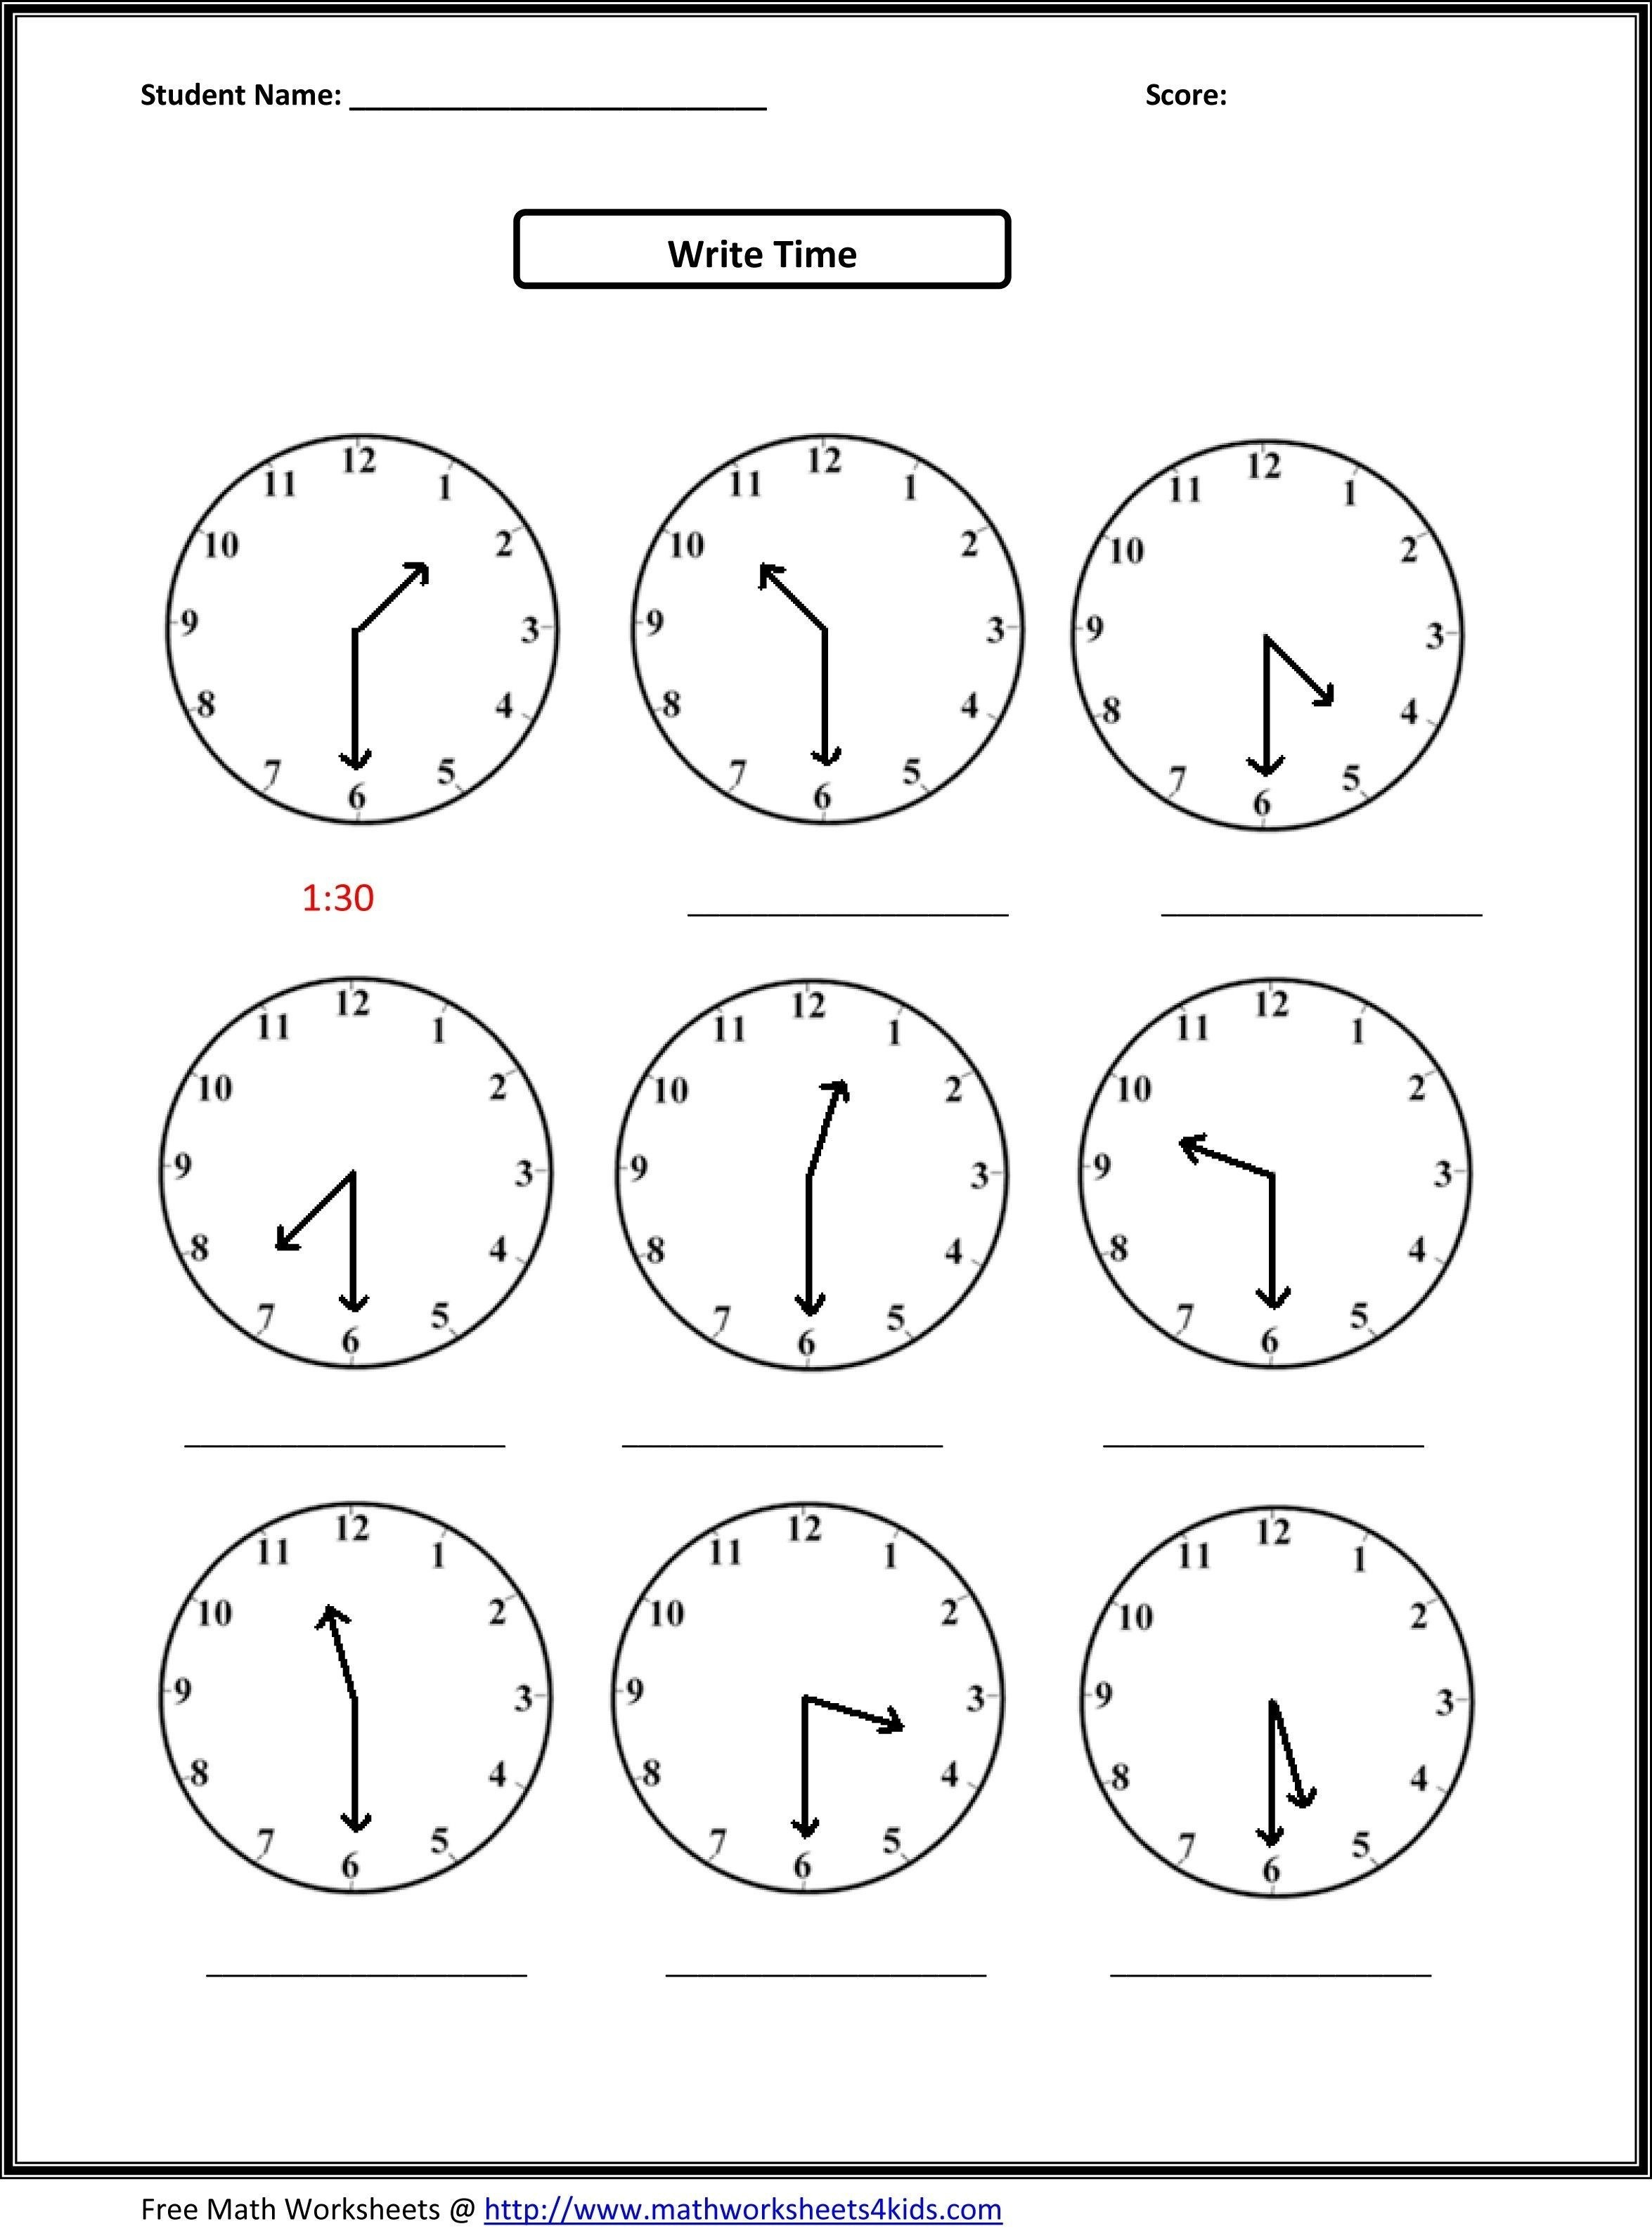 √ Telling Time Printable Worksheets First Grade Inspirationa - Free | Telling Time Printable Worksheets First Grade